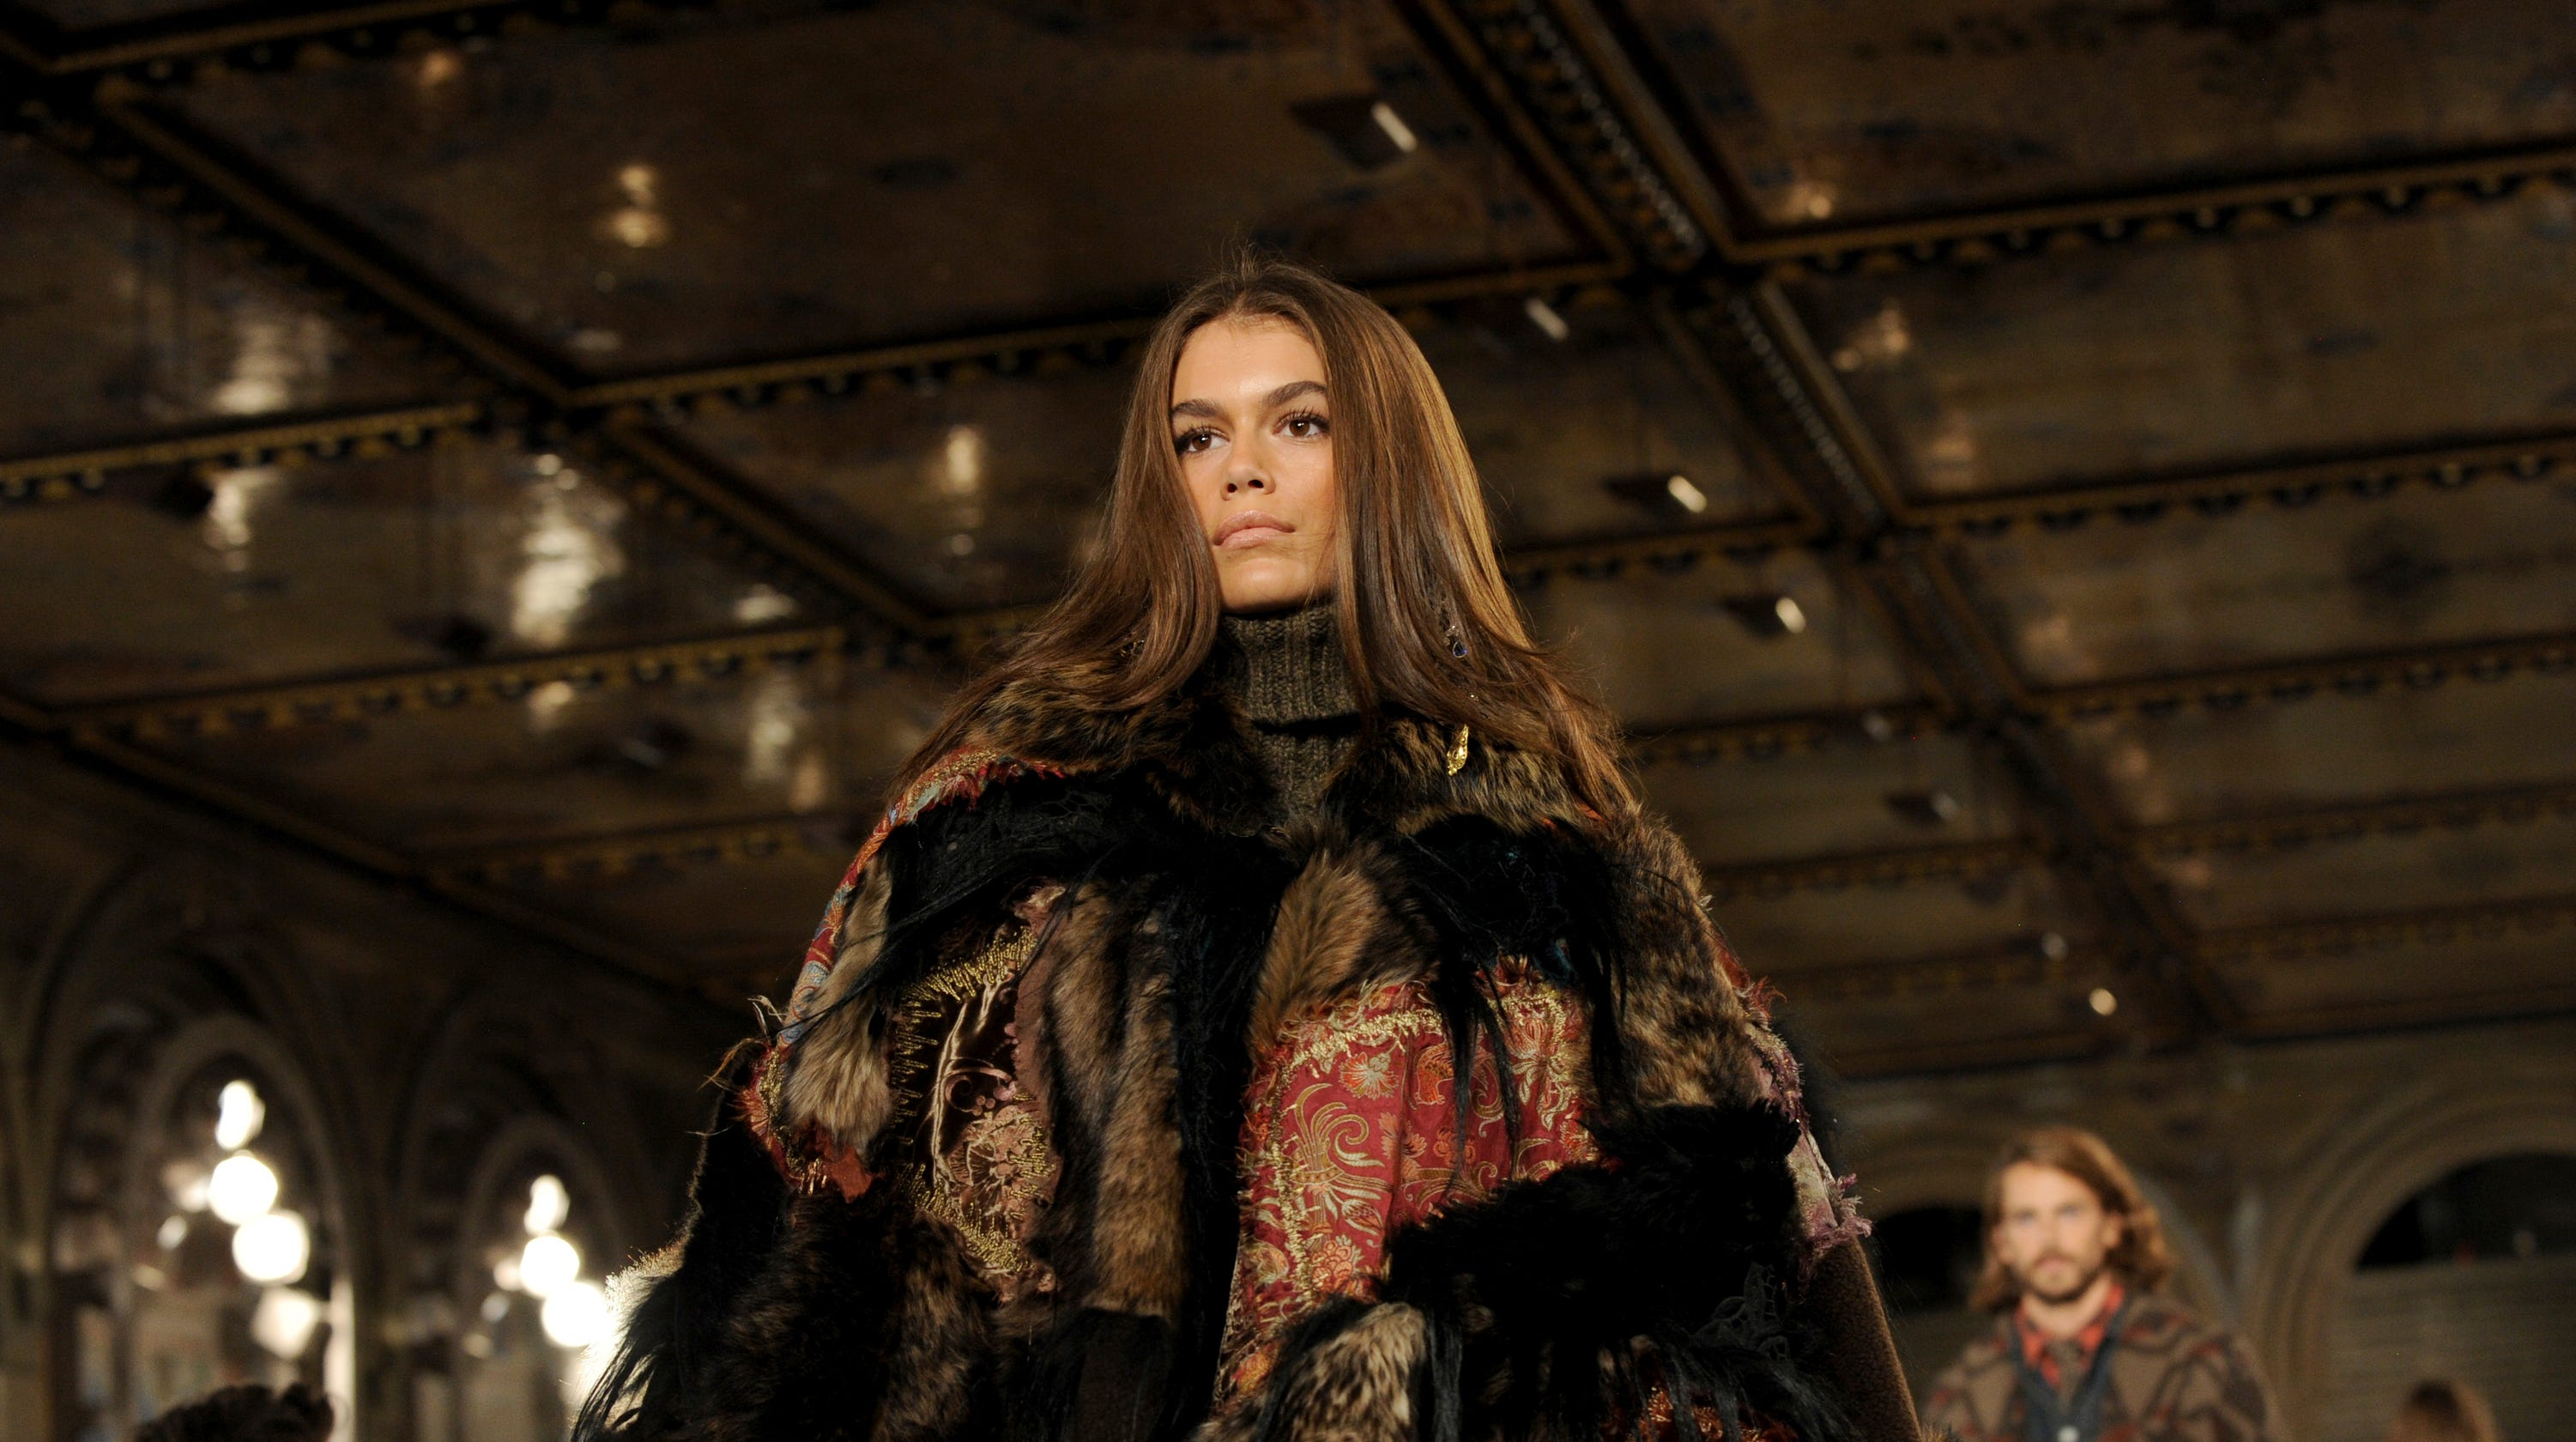 ac2c1ec24ae9 Ralph Lauren celebrates 50th anniversary at New York Fashion Week